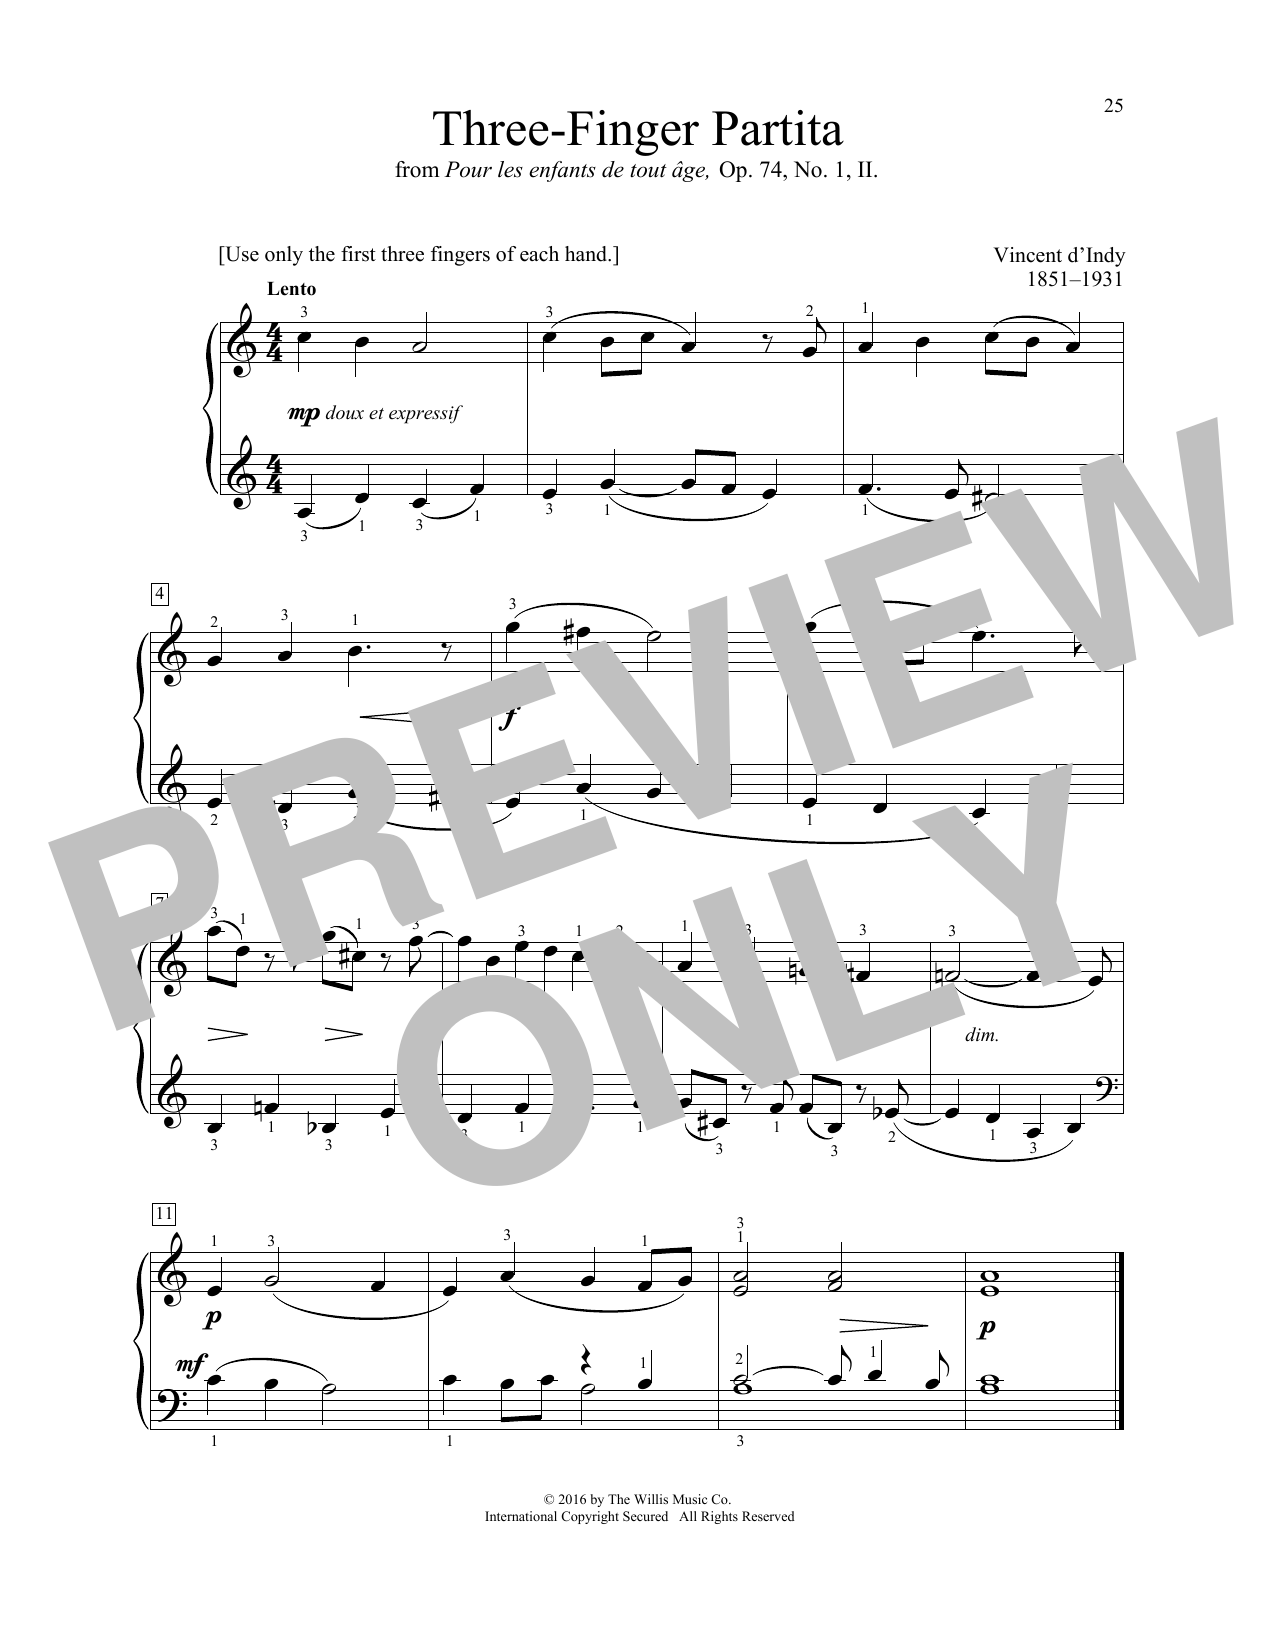 Vincent d'Indy Three-Finger Partita sheet music notes and chords. Download Printable PDF.